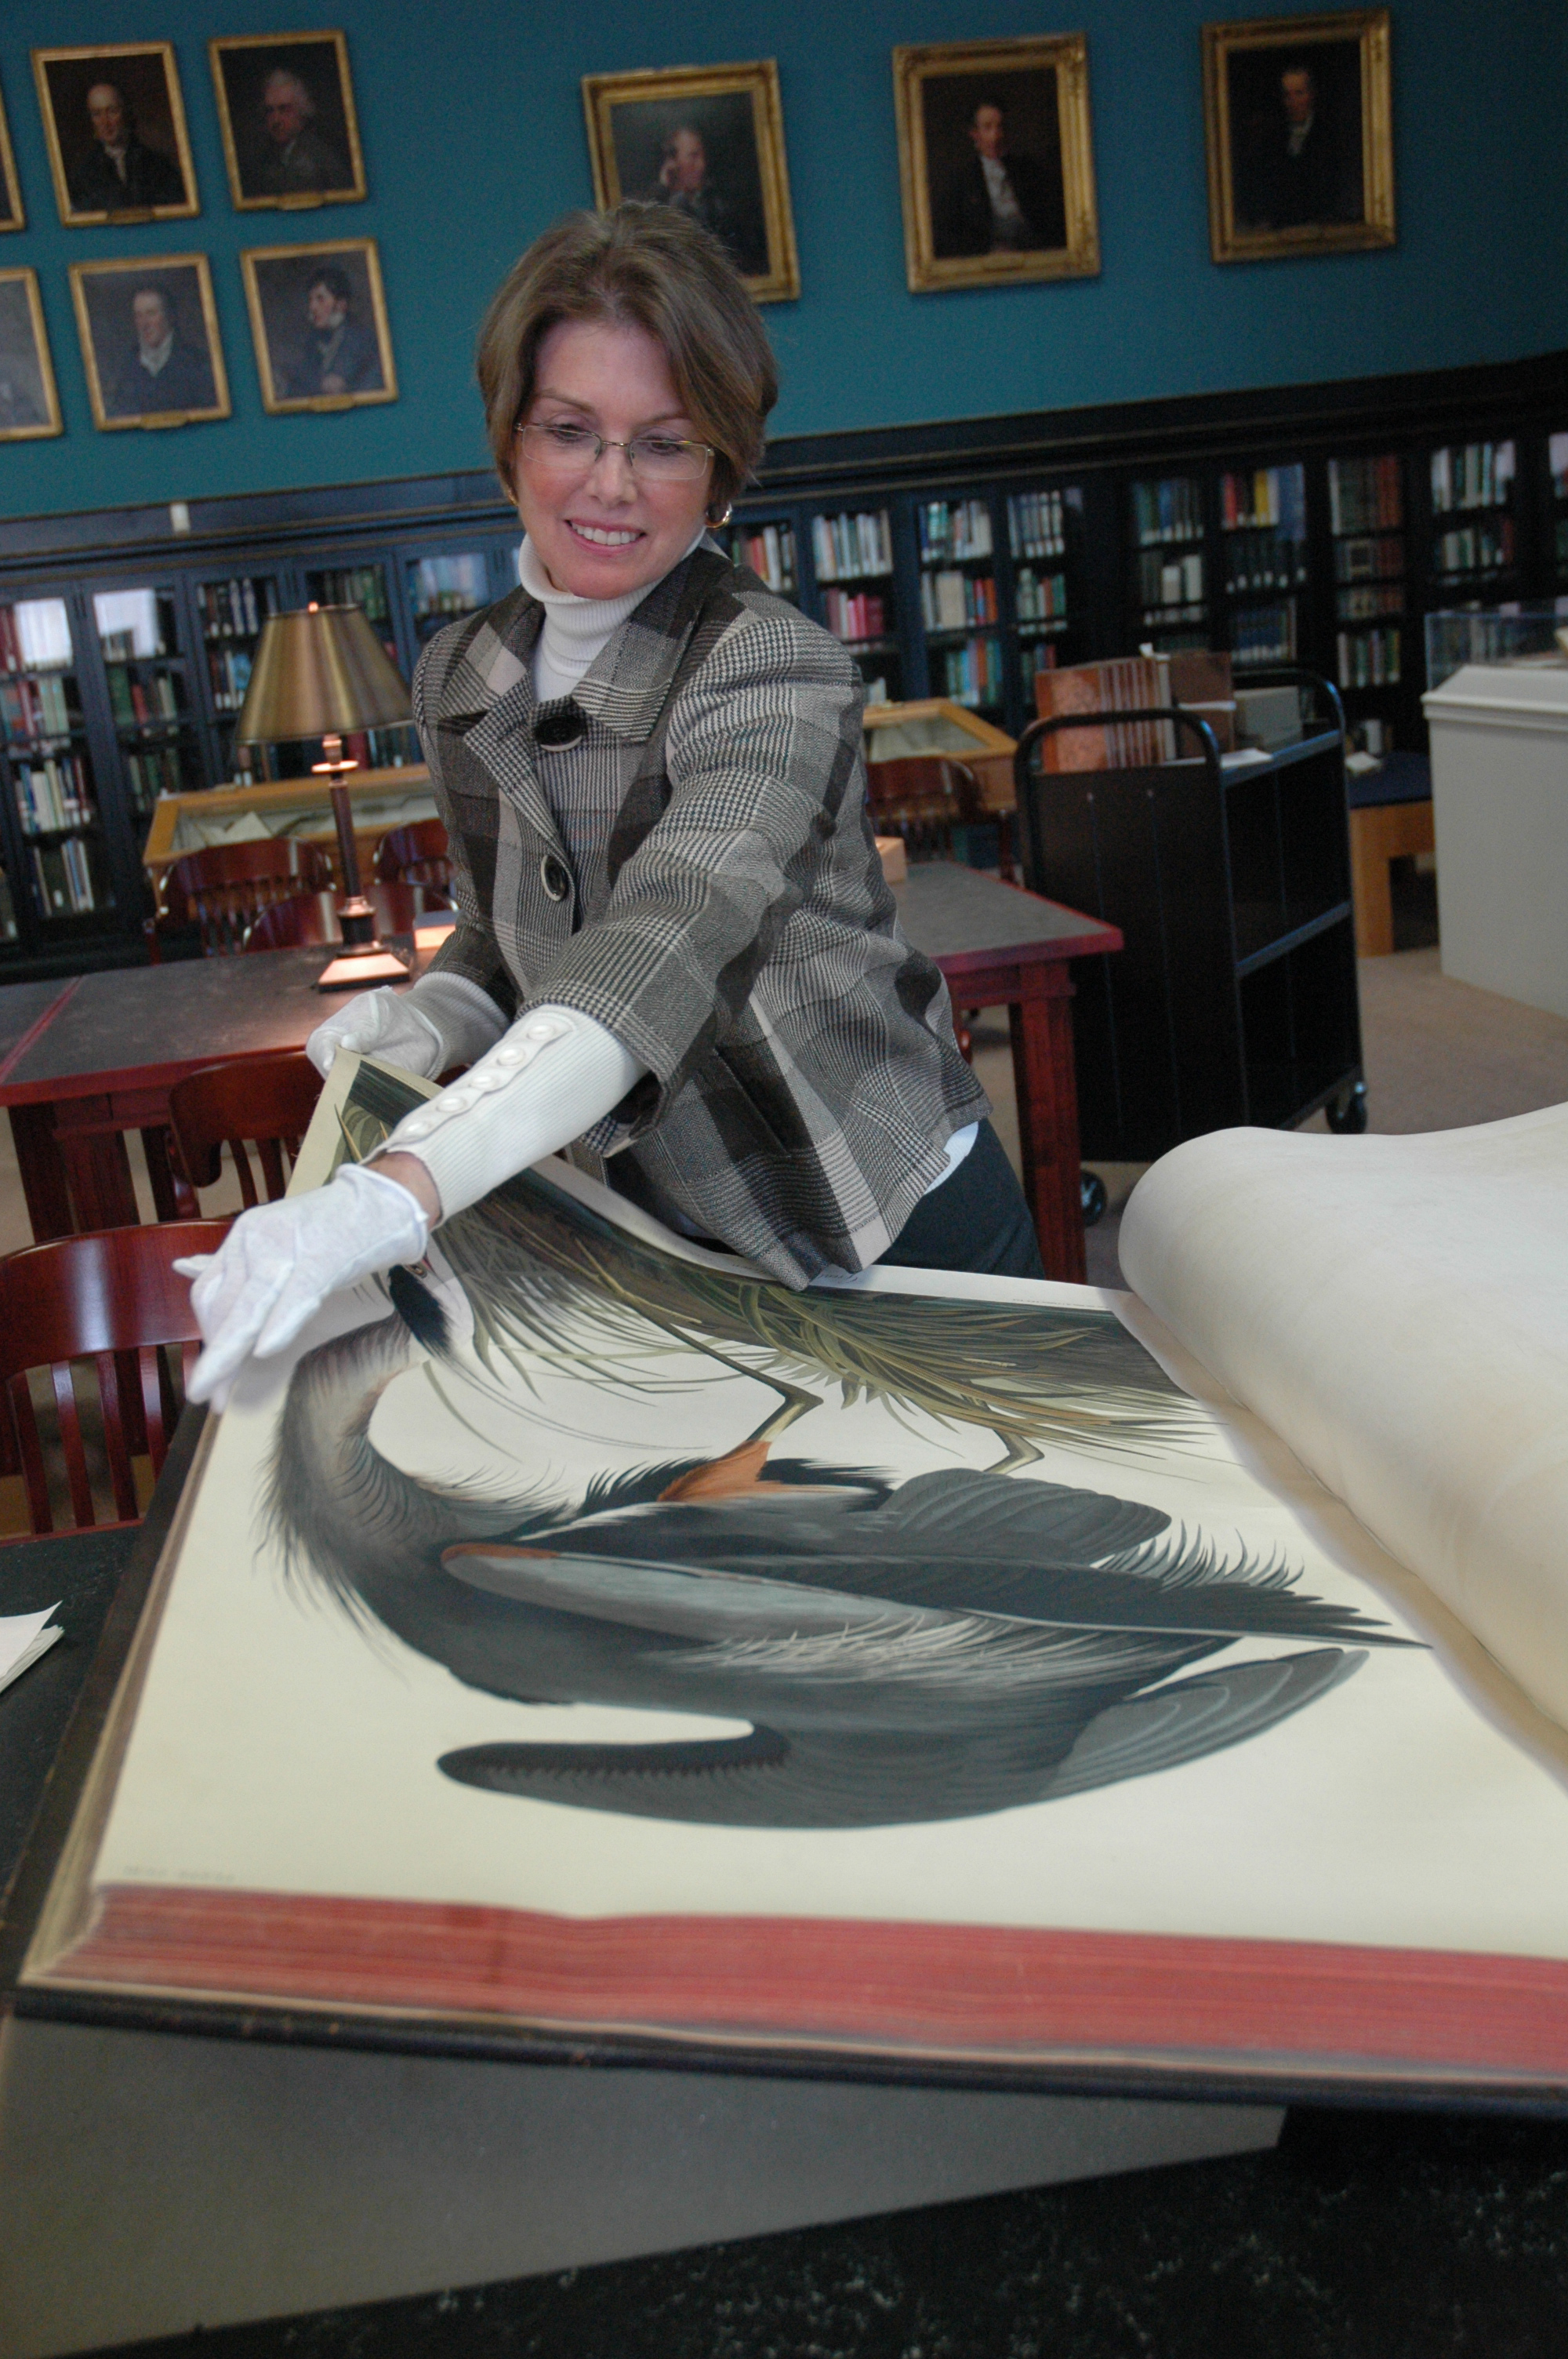 Every weekday at 3:15 p.m., museum visitors are invited to hear a short talk and observe the turning of a page of Audubon's Birds of North America elephant folio.